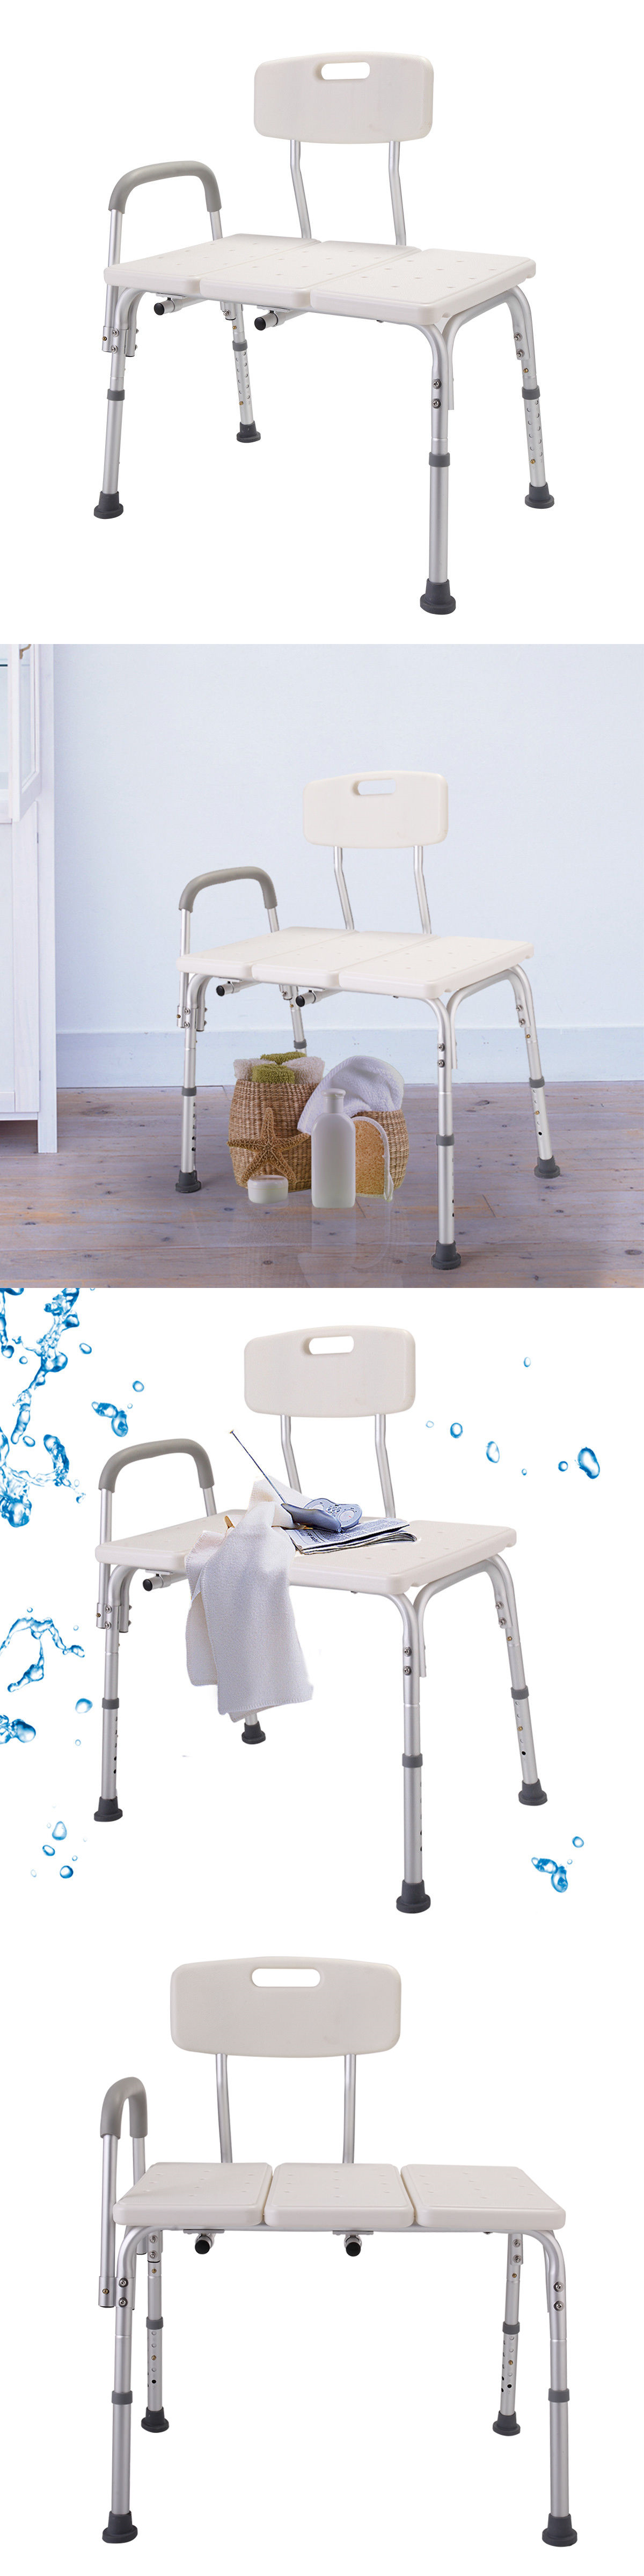 Shower and Bath Seats: Shower Chair 10 Height Adjustable Bathtub ...